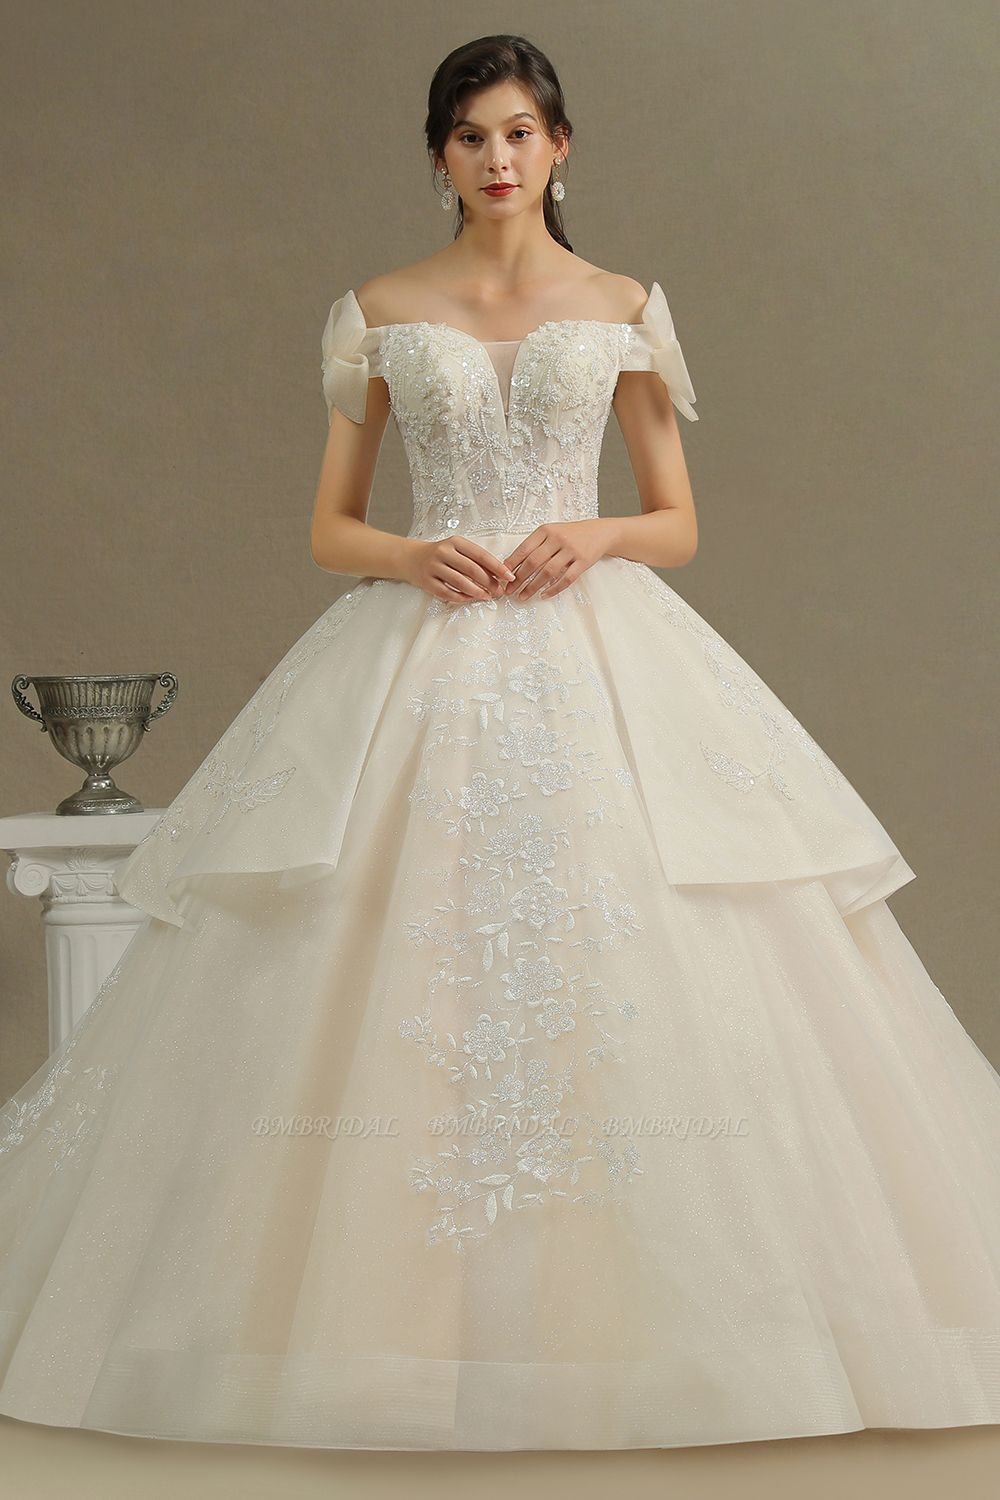 BMbridal Stunning Off-the-Shoulder Lace Brida Gown With Sequins Appliques